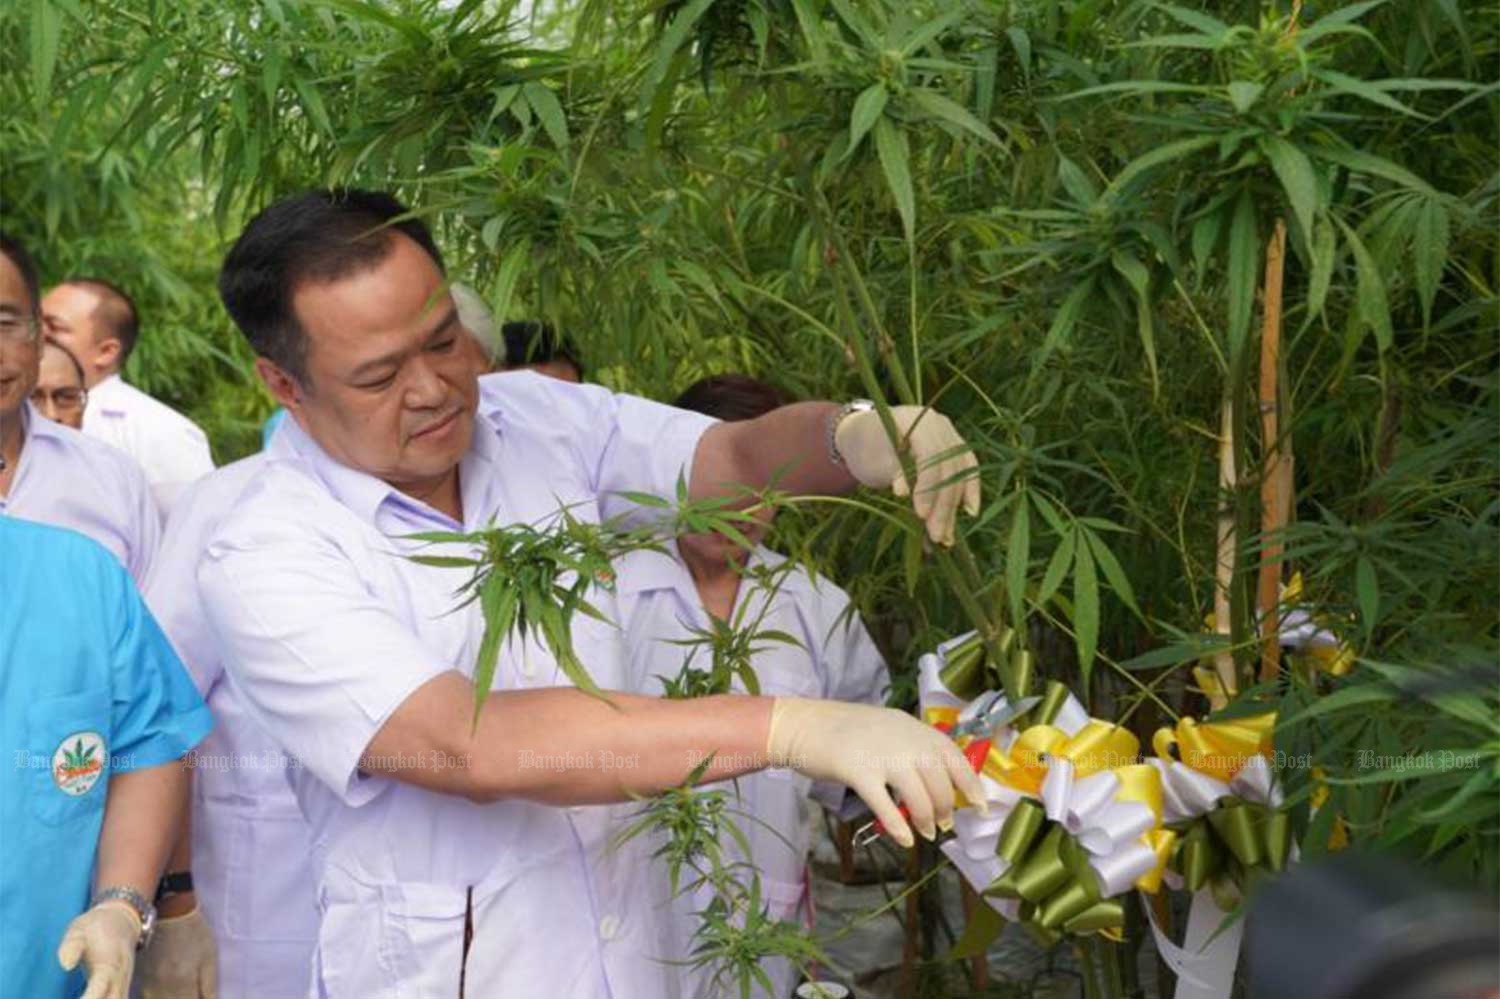 Public Health Minister Anutin Charnvirakul harvests the first head taken from marijuana planted in a closed-system farm run by Maejo University in Chiang Mai's San Sai district  on Jan 15 this year. (File photo)